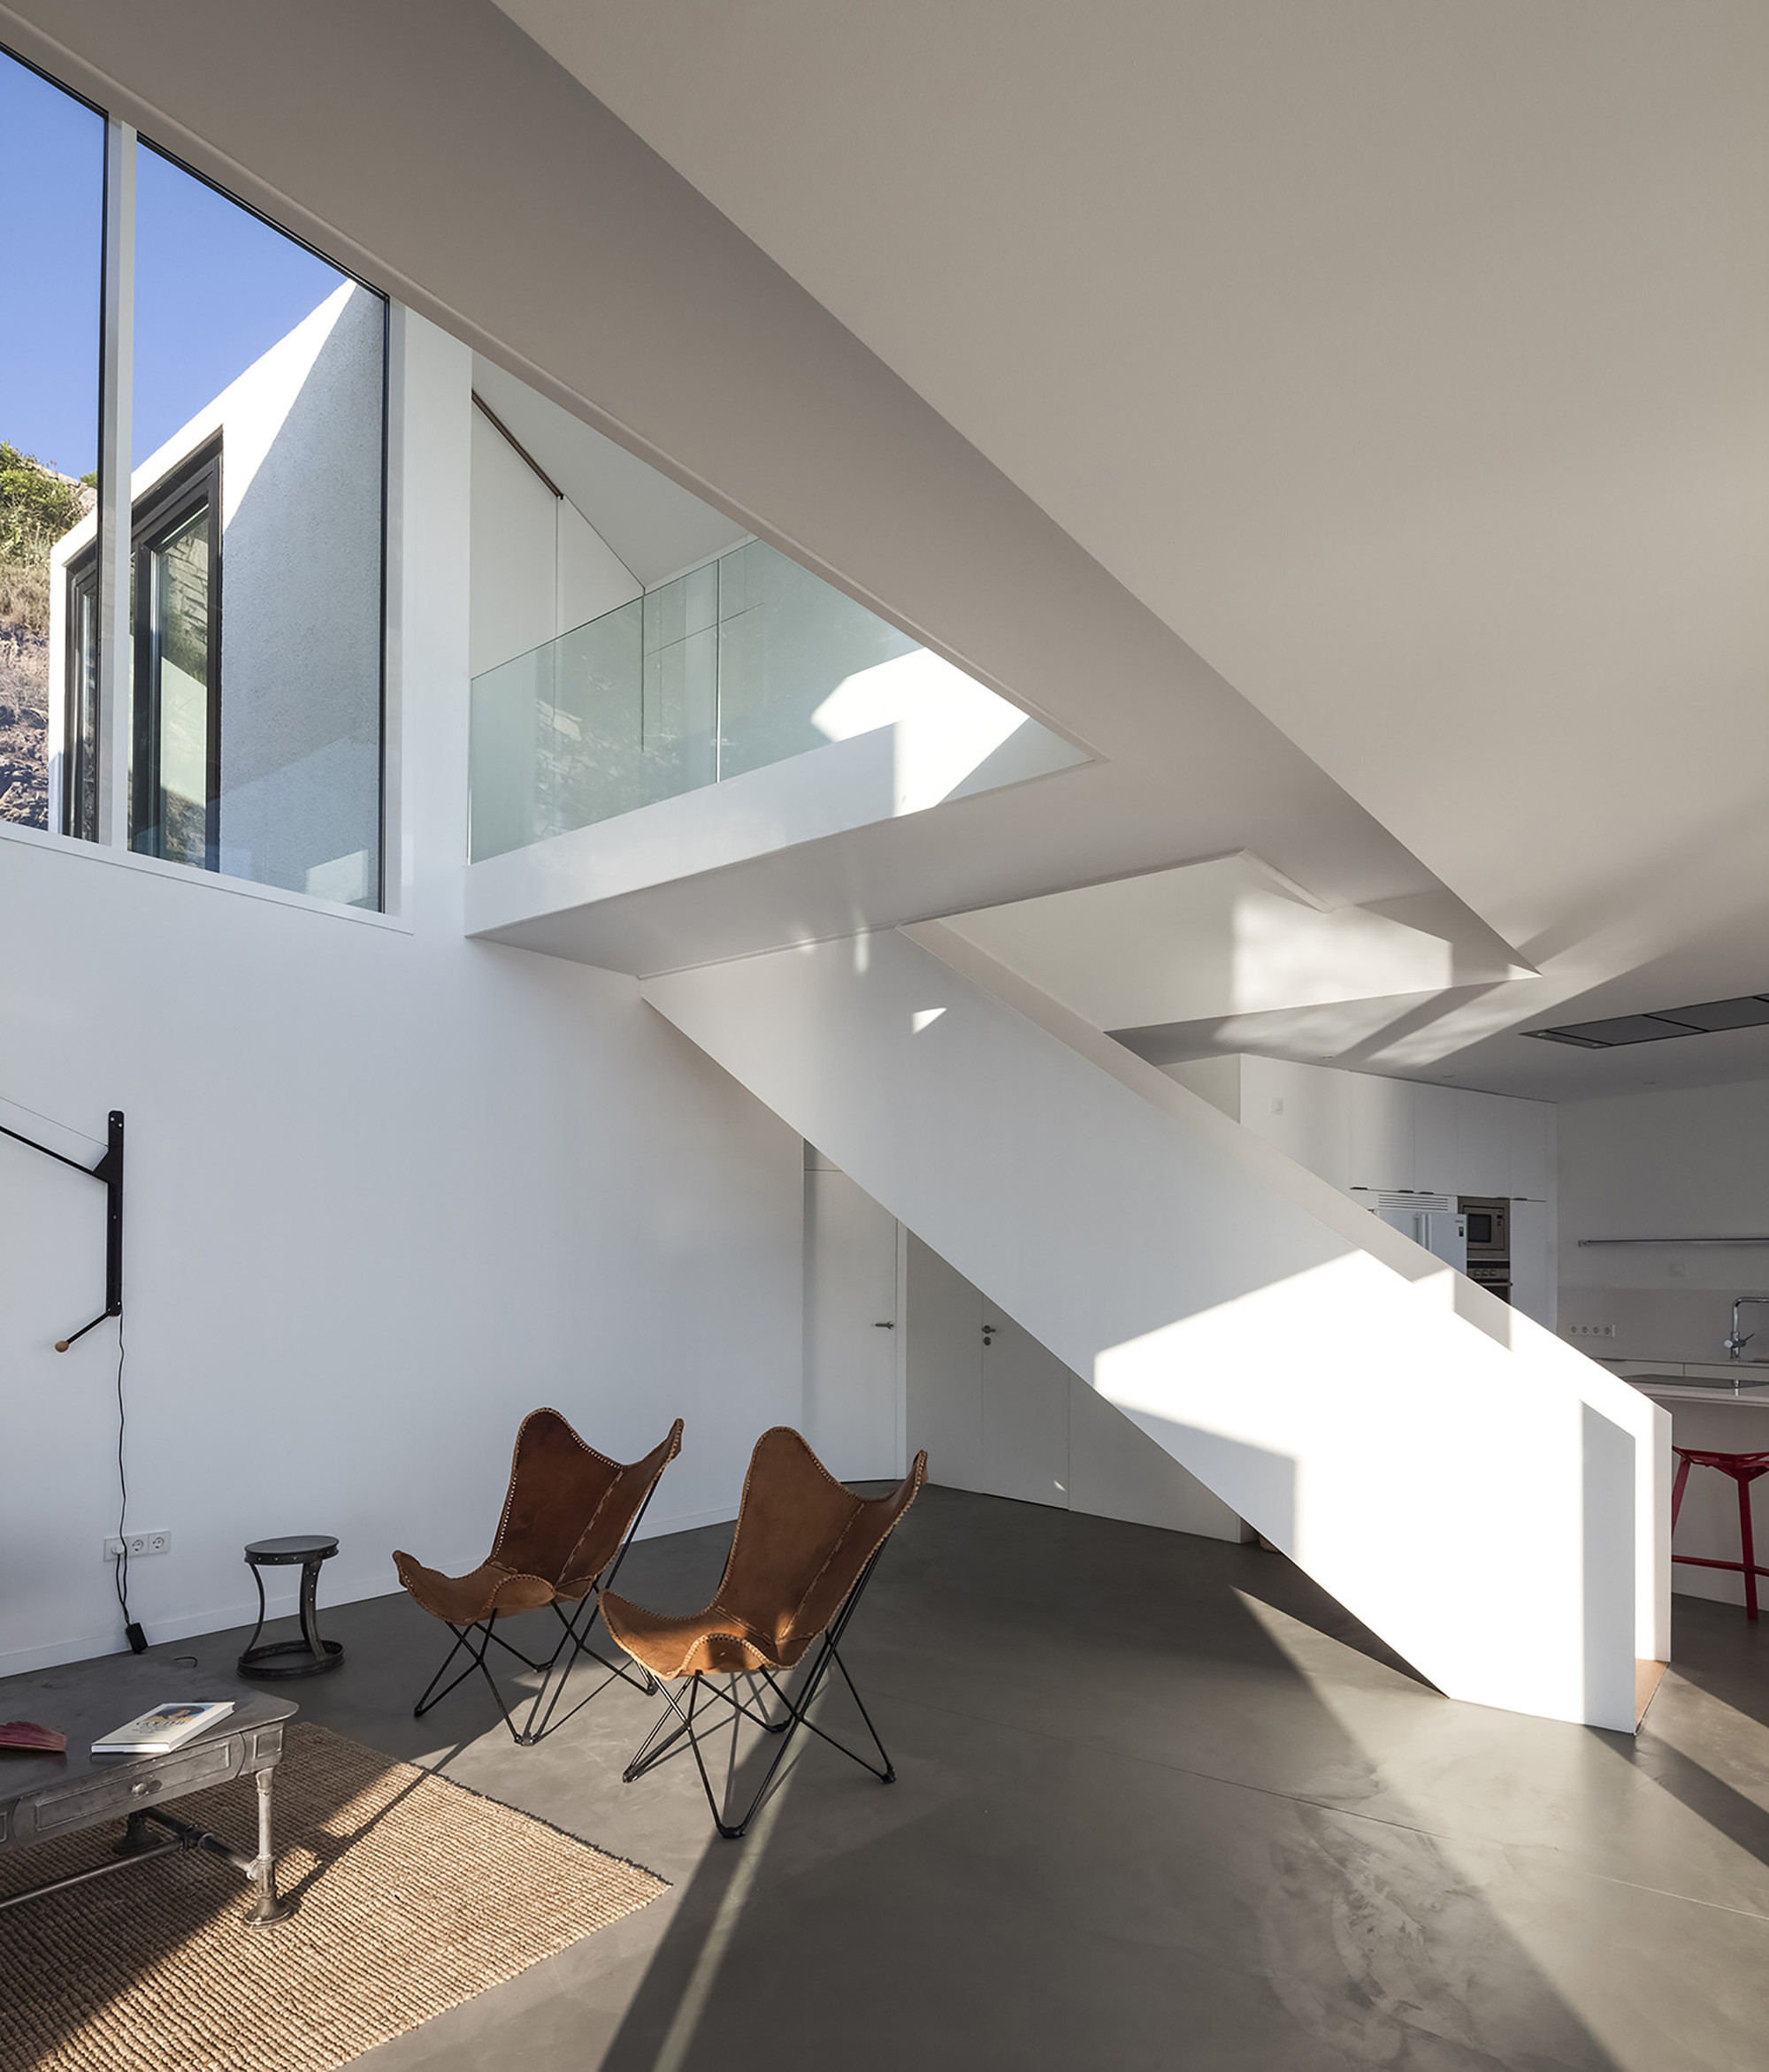 Sunflower house by cadaval sol morales in girona spain for House by design